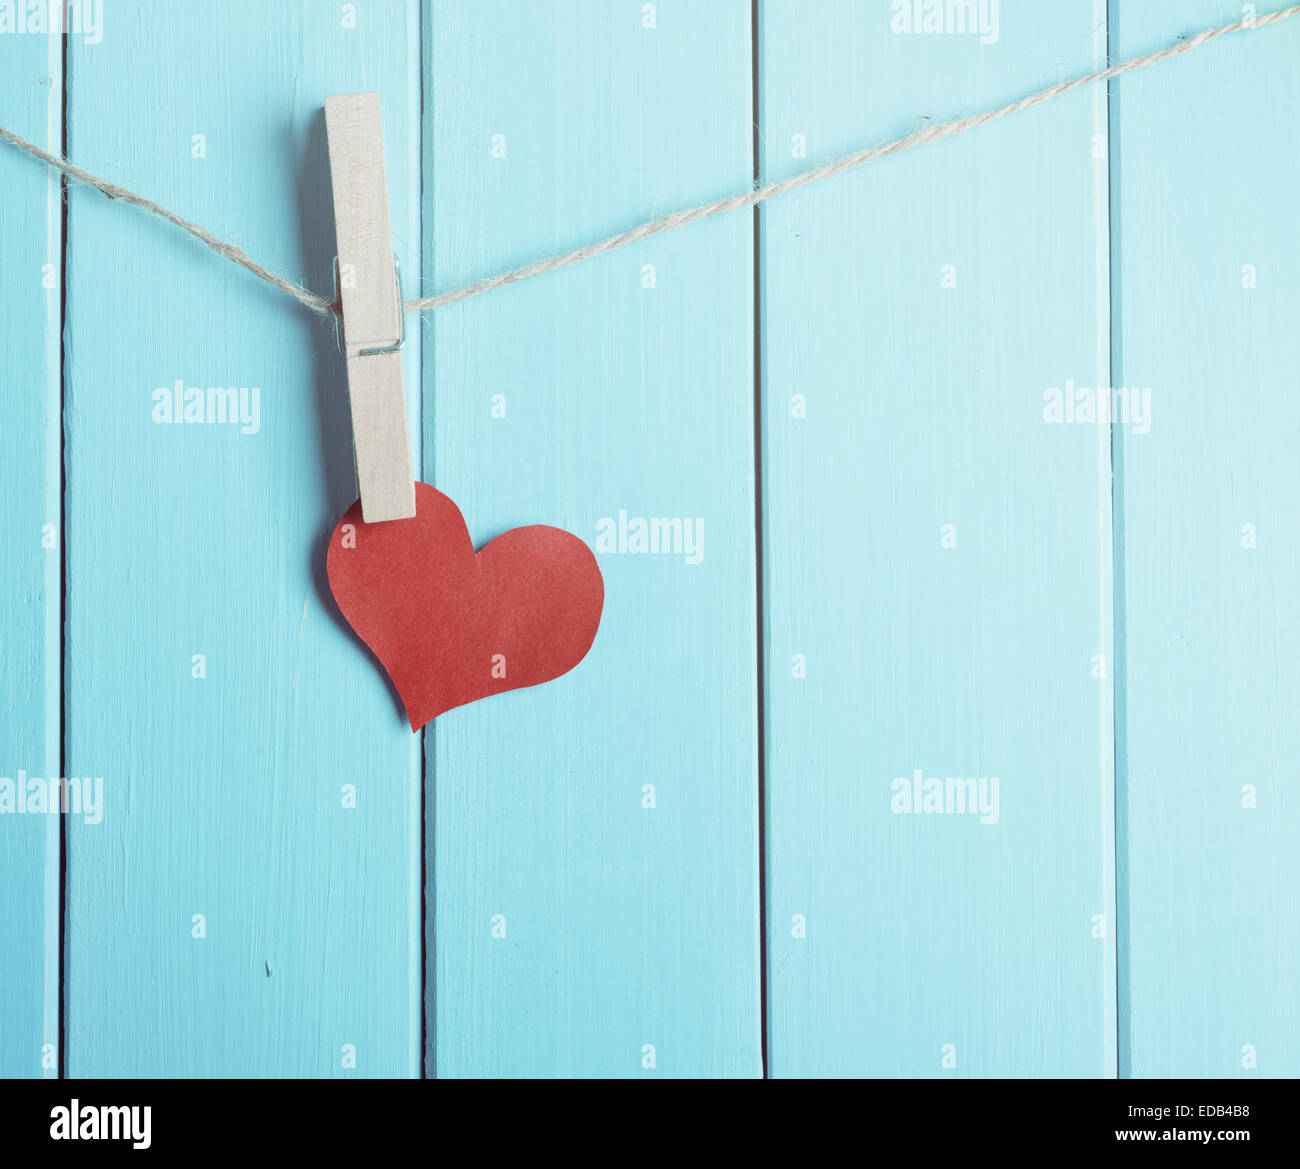 red heart made of paper with clothespin hanging on a rope and wooden blue  planks background with space for text - Stock Image